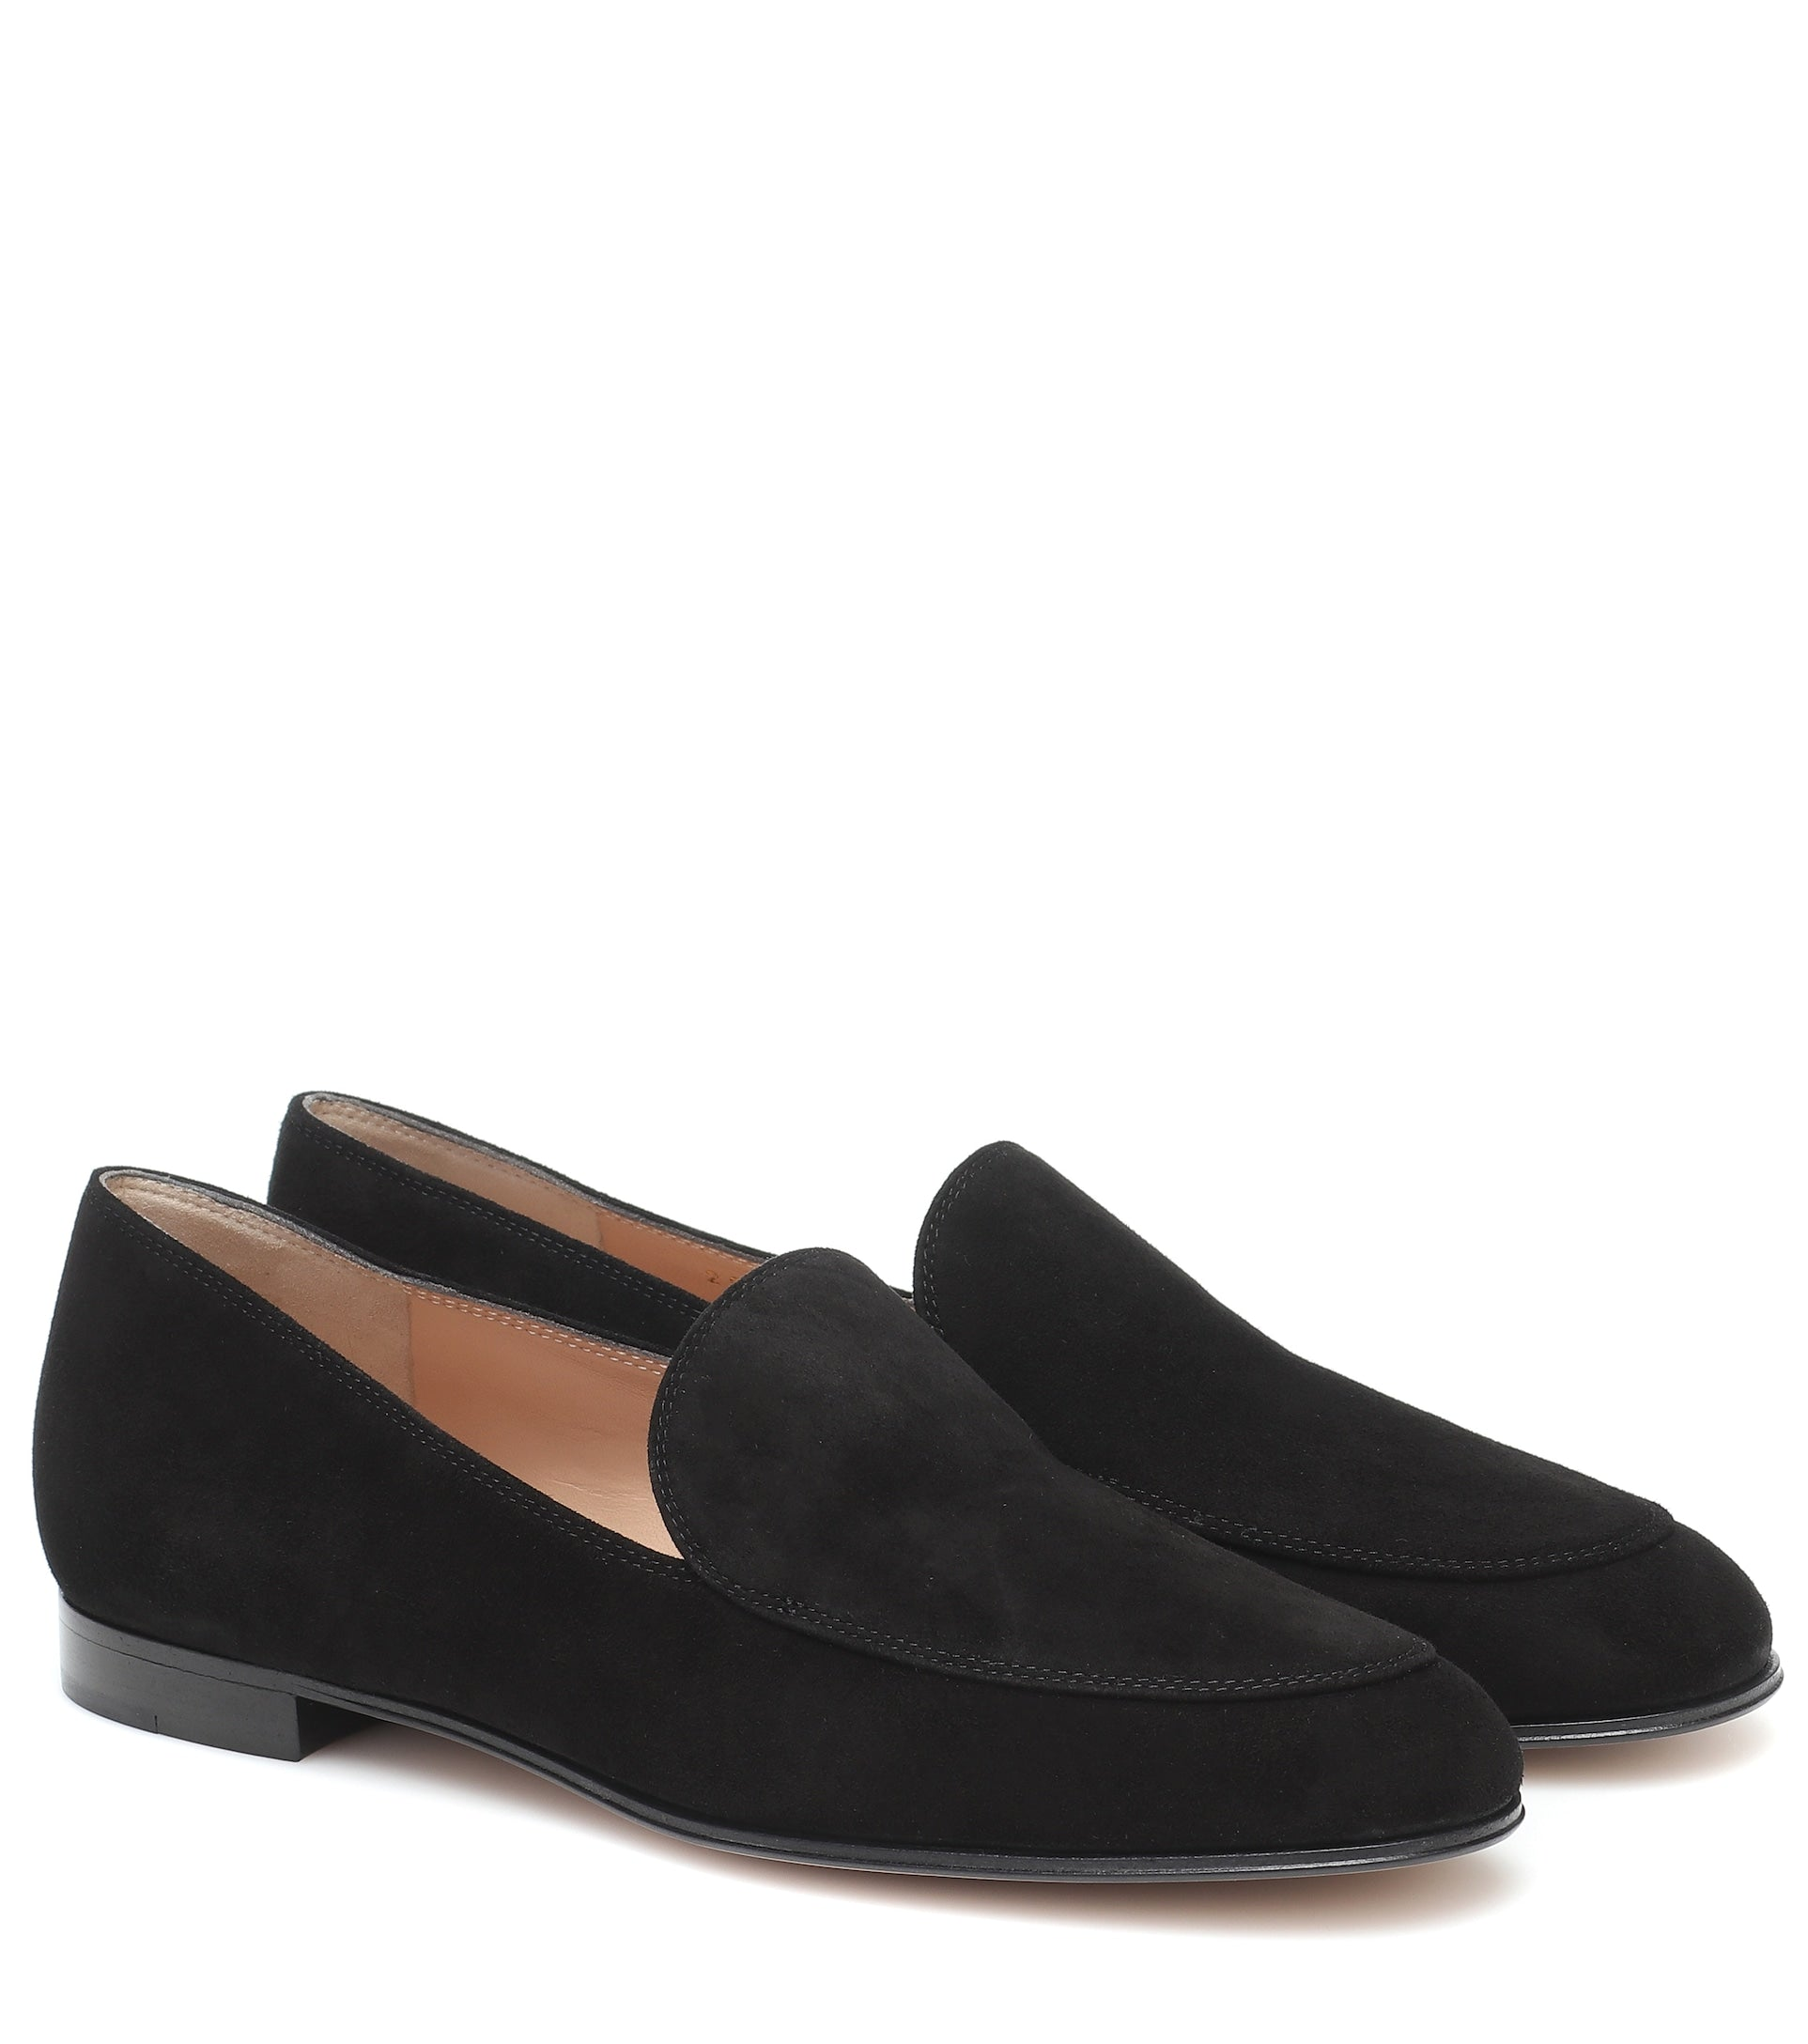 Gianvito Rossi Marcel Loafer